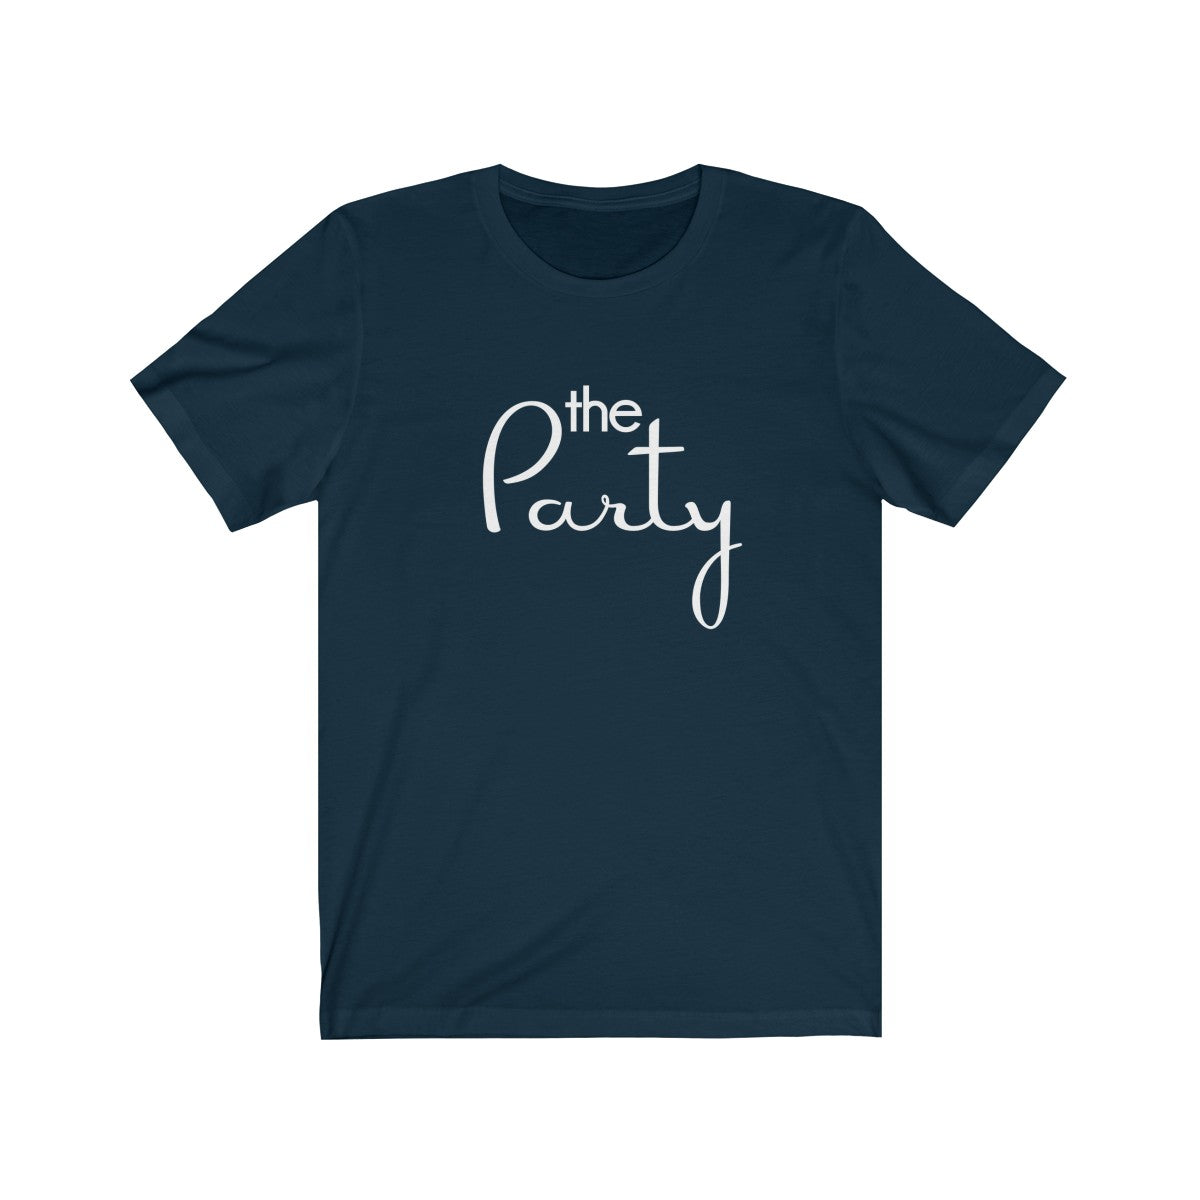 Tee The Party White Print Short Sleeve - elrileygifts